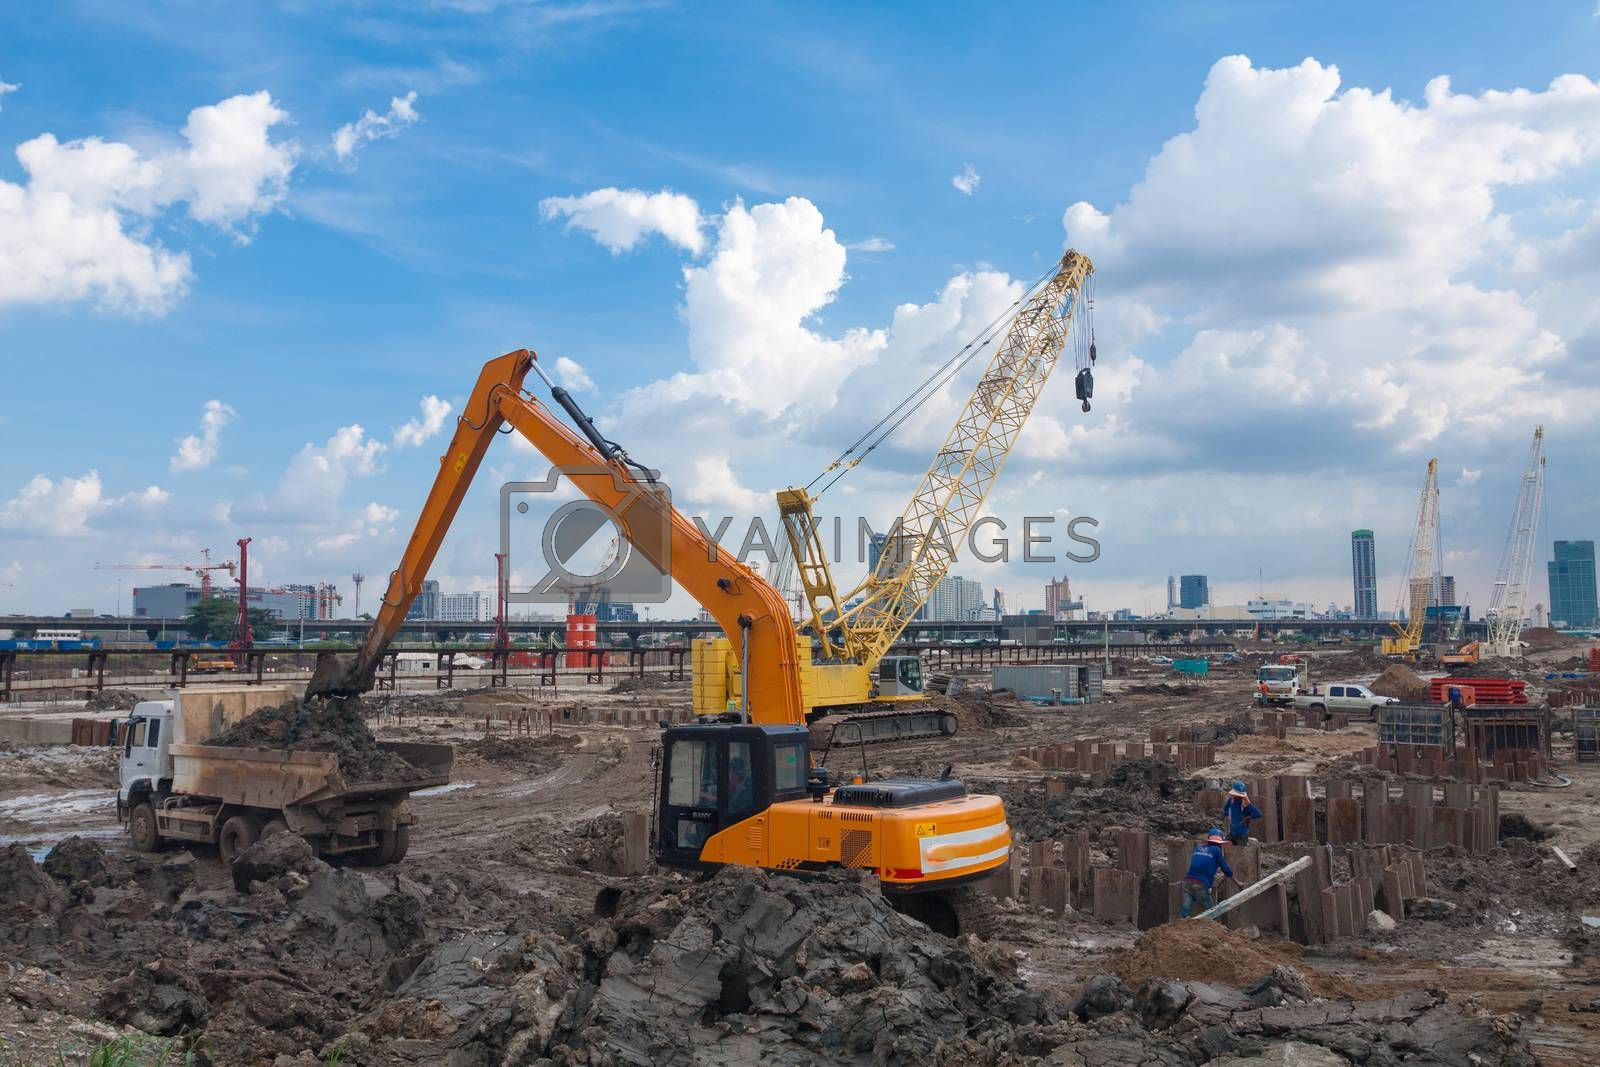 The construction site. Construction of the new building. Construction cranes.